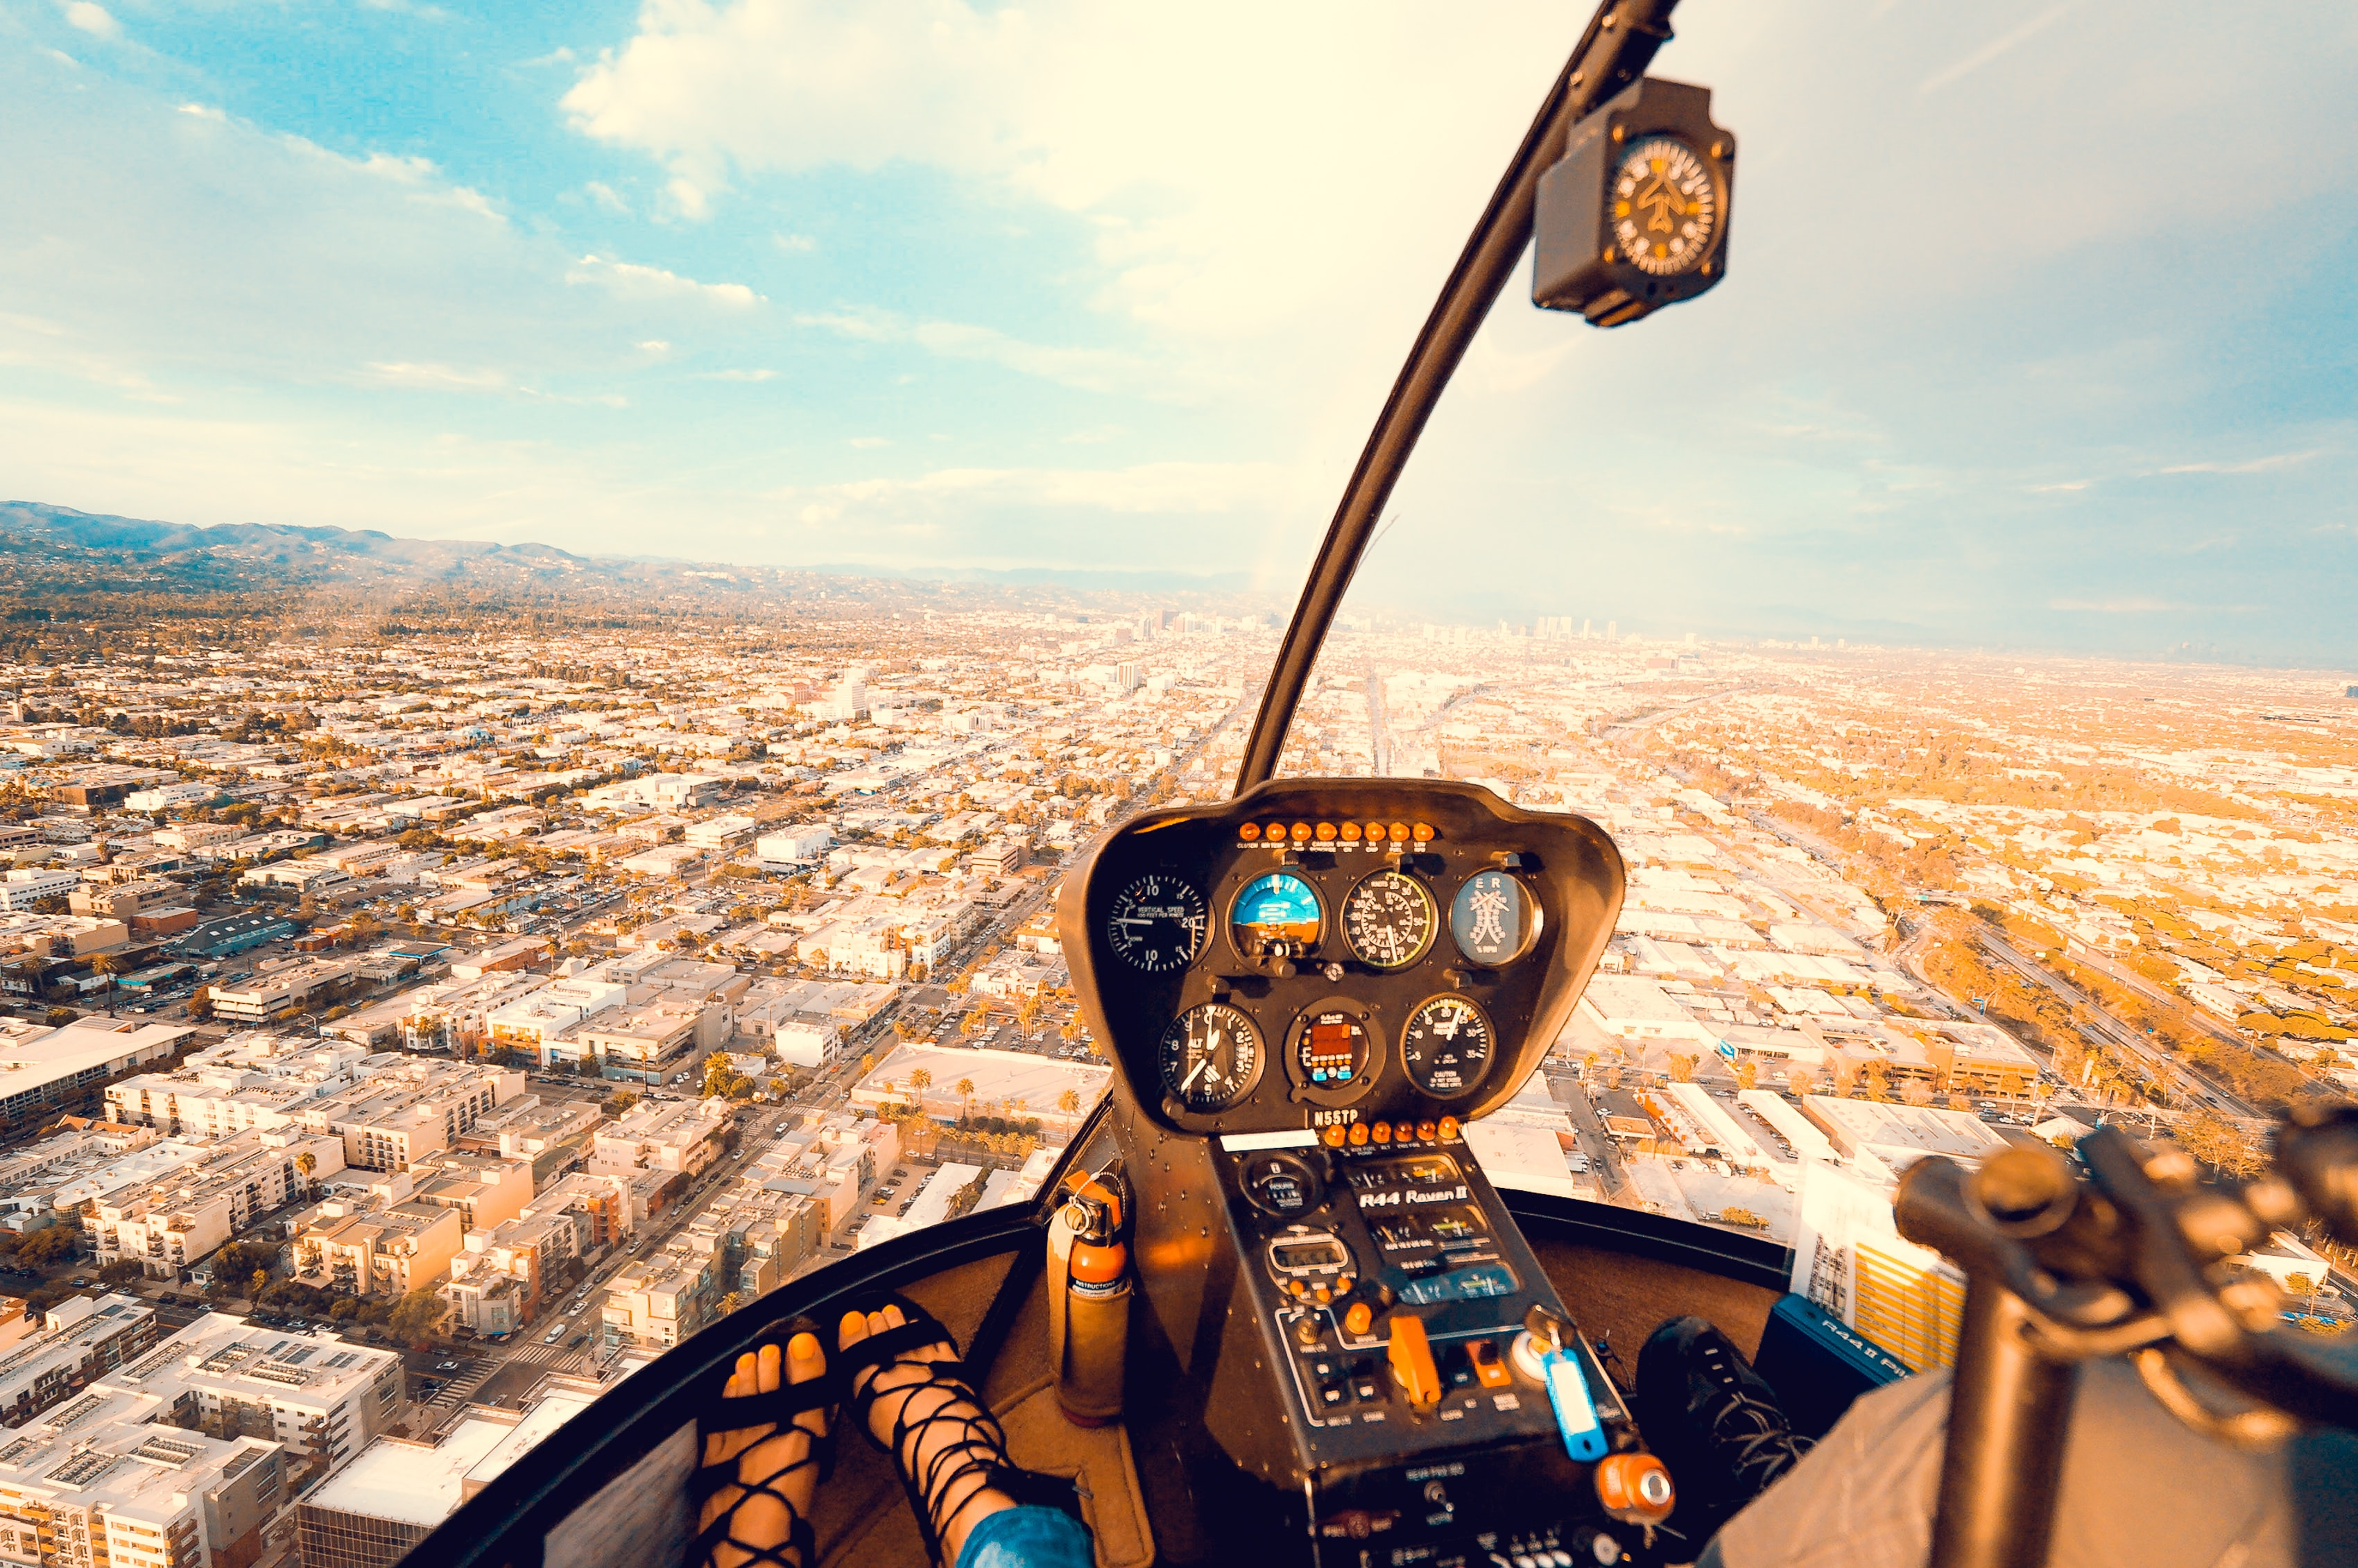 Inside the cockpit of a helicopter flying above a busy city downtown